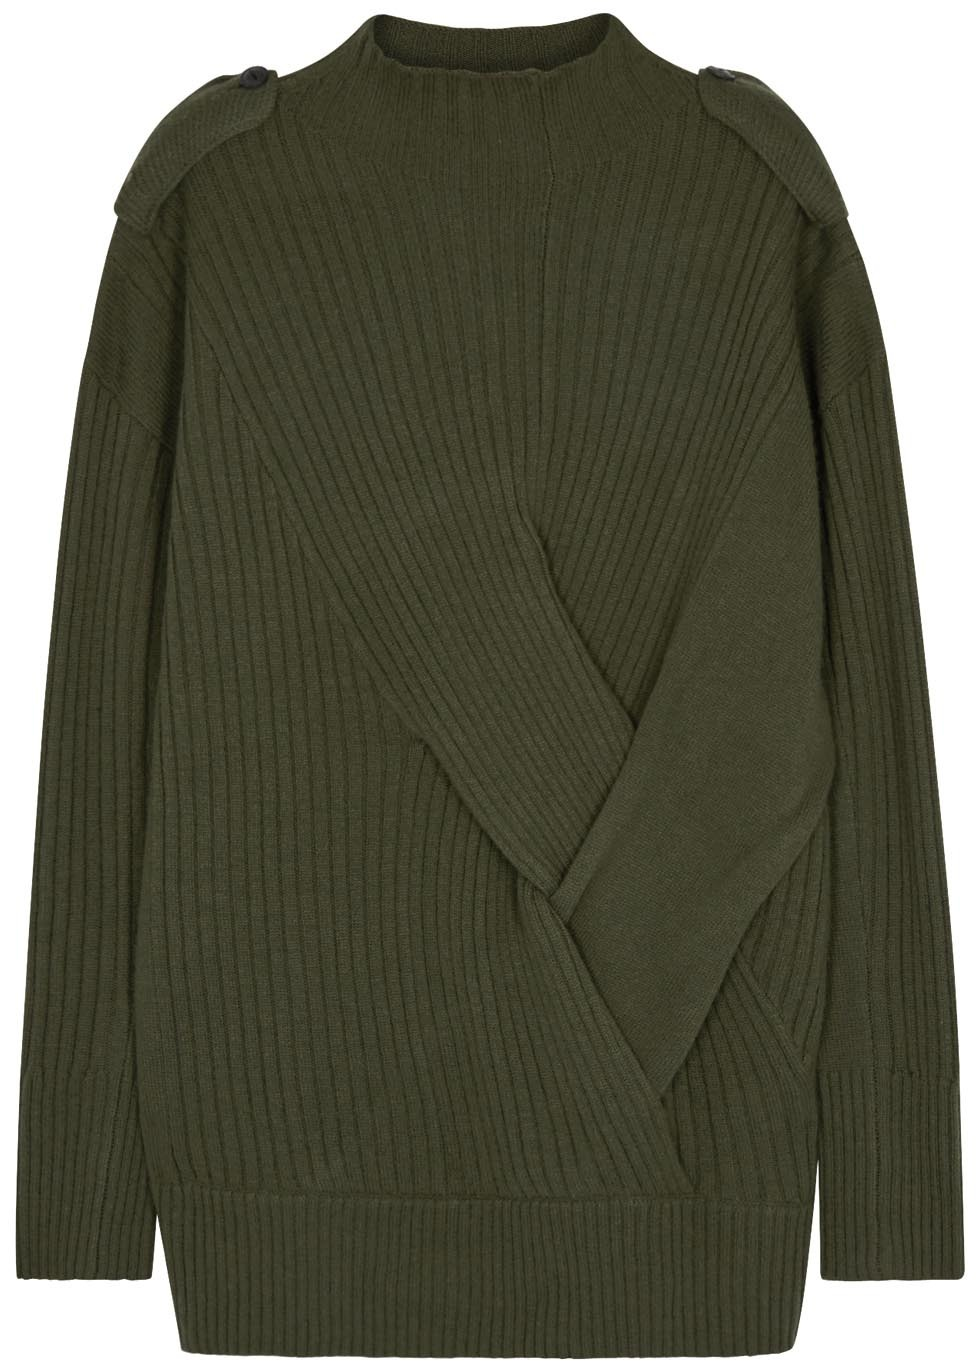 Dale Olive Ribbed Merino Wool Jumper Size - pattern: plain; neckline: high neck; shoulder detail: obvious epaulette; length: below the bottom; style: standard; predominant colour: khaki; occasions: casual, creative work; fibres: wool - 100%; fit: standard fit; sleeve length: long sleeve; sleeve style: standard; texture group: knits/crochet; pattern type: knitted - other; season: a/w 2016; wardrobe: highlight